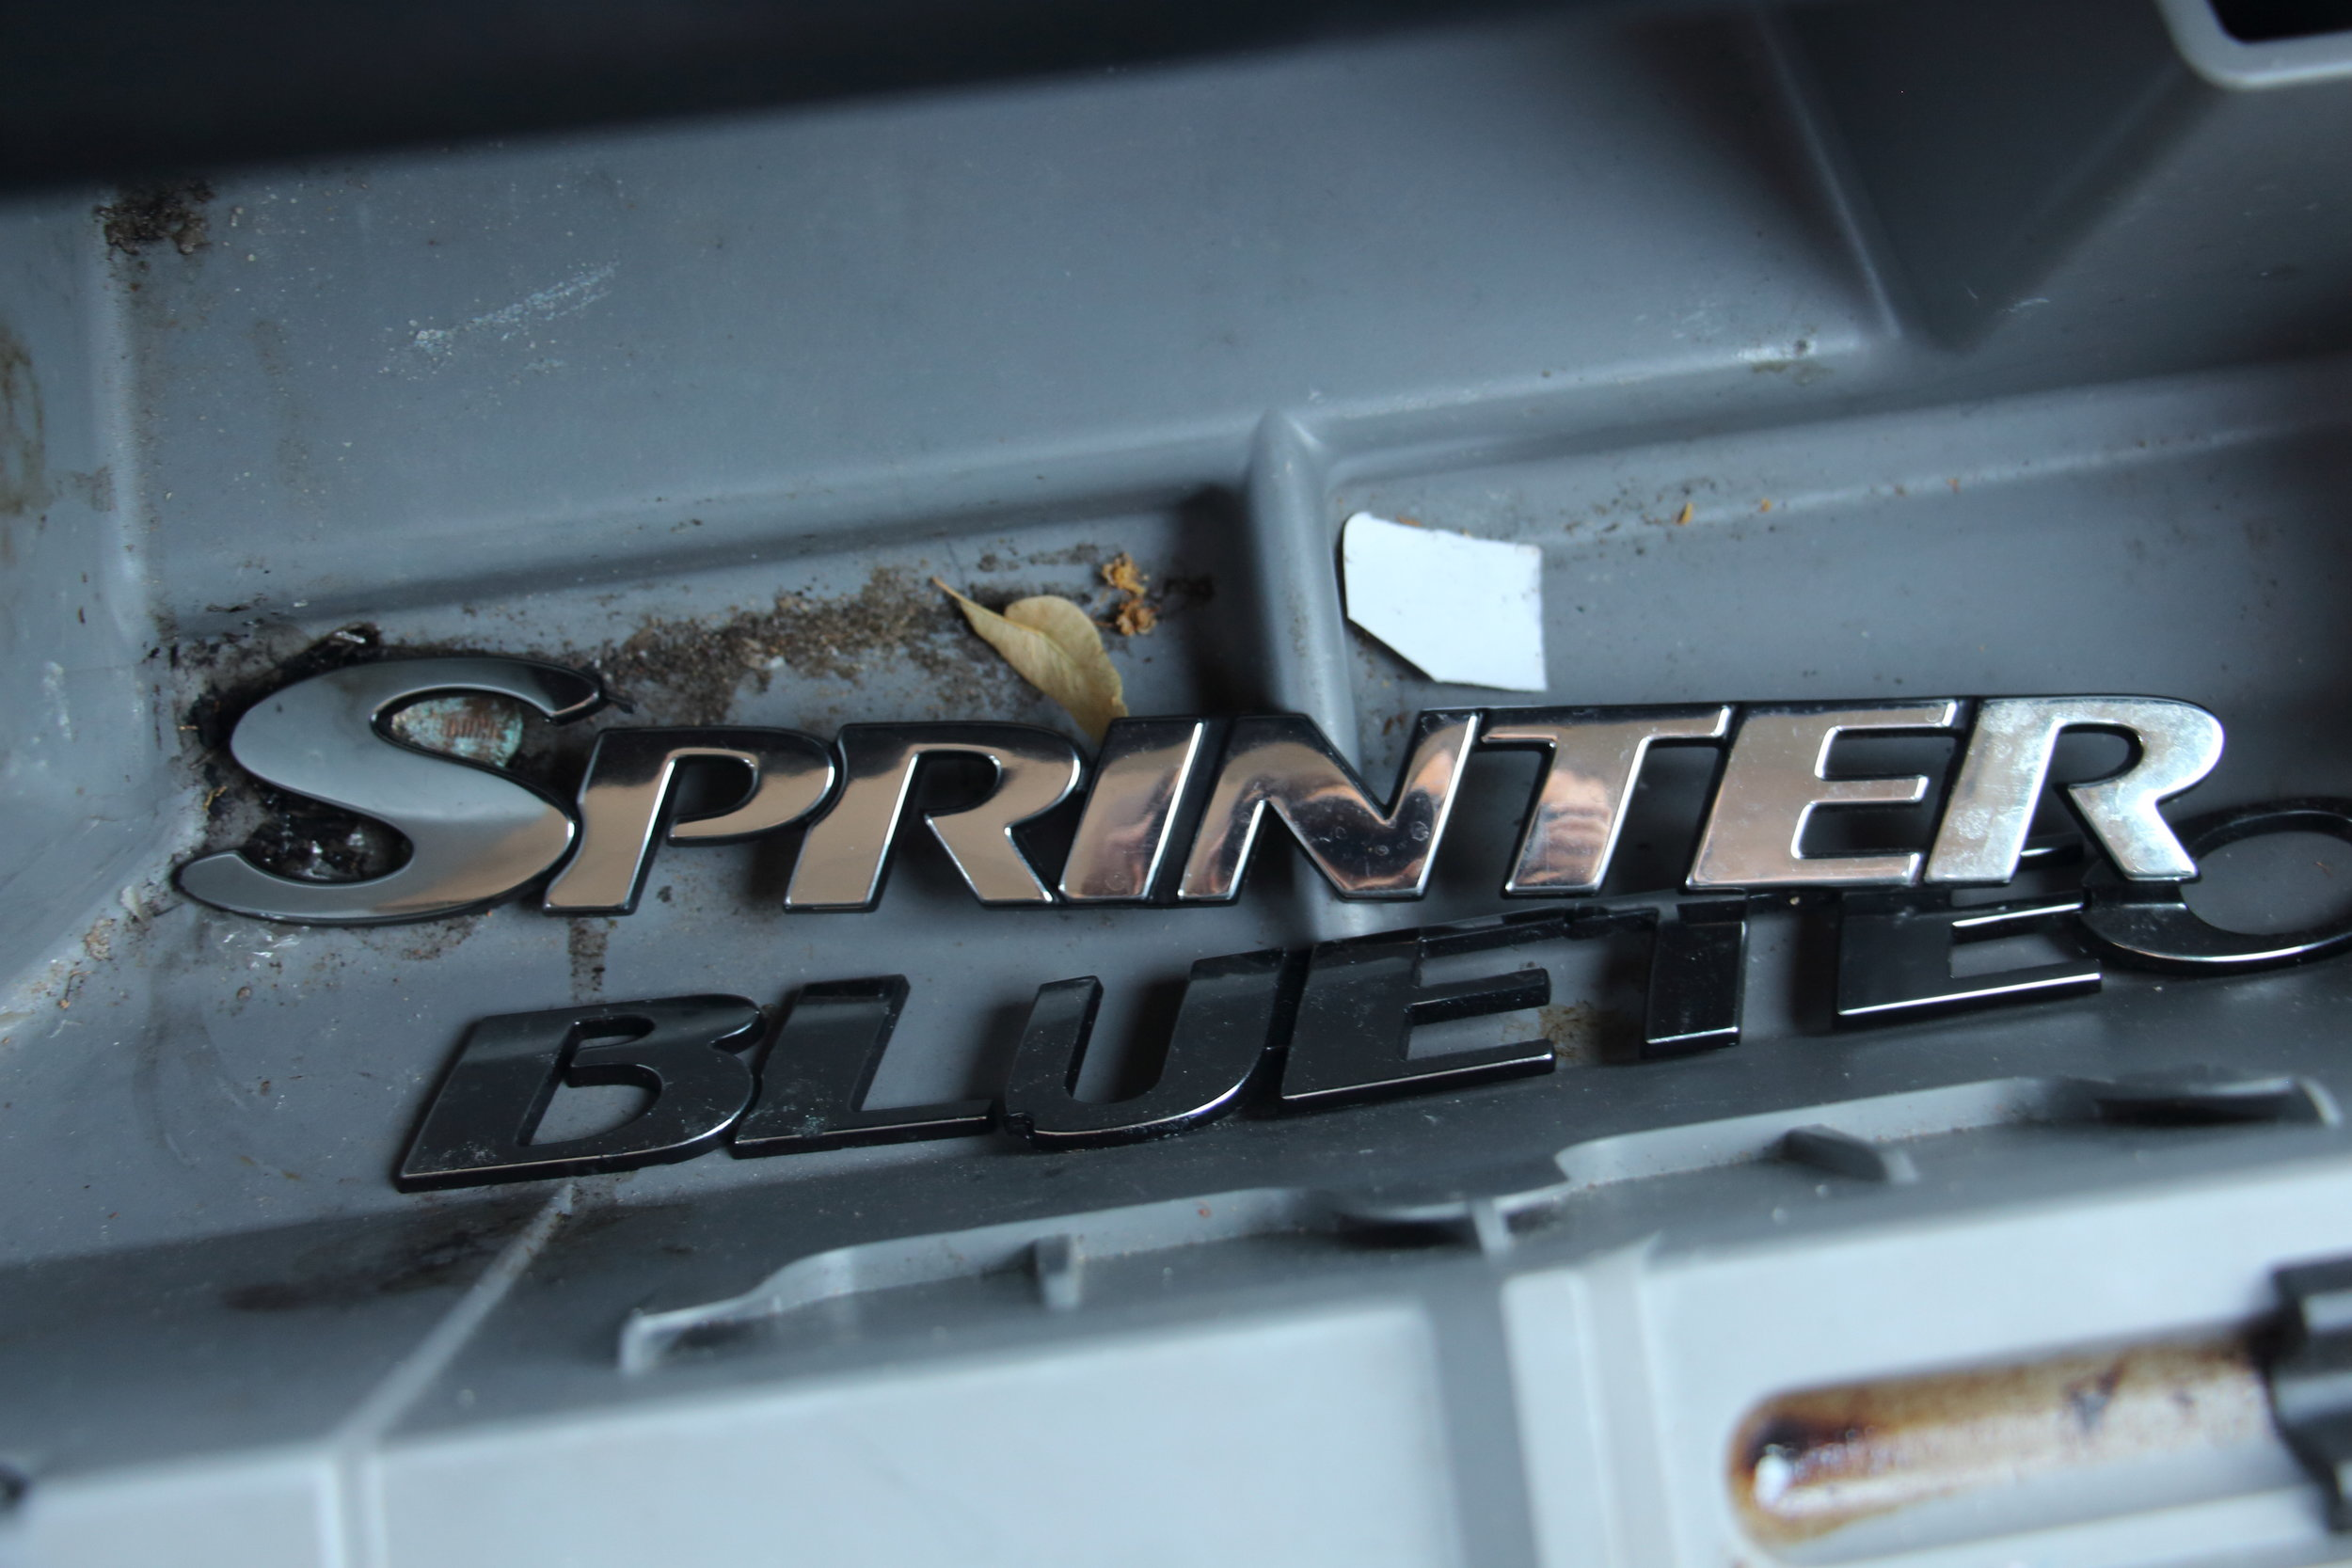 Found the Sprinter logo sadly tucked away in the glove compartment. The van's not perfect, but we loved it anyways.